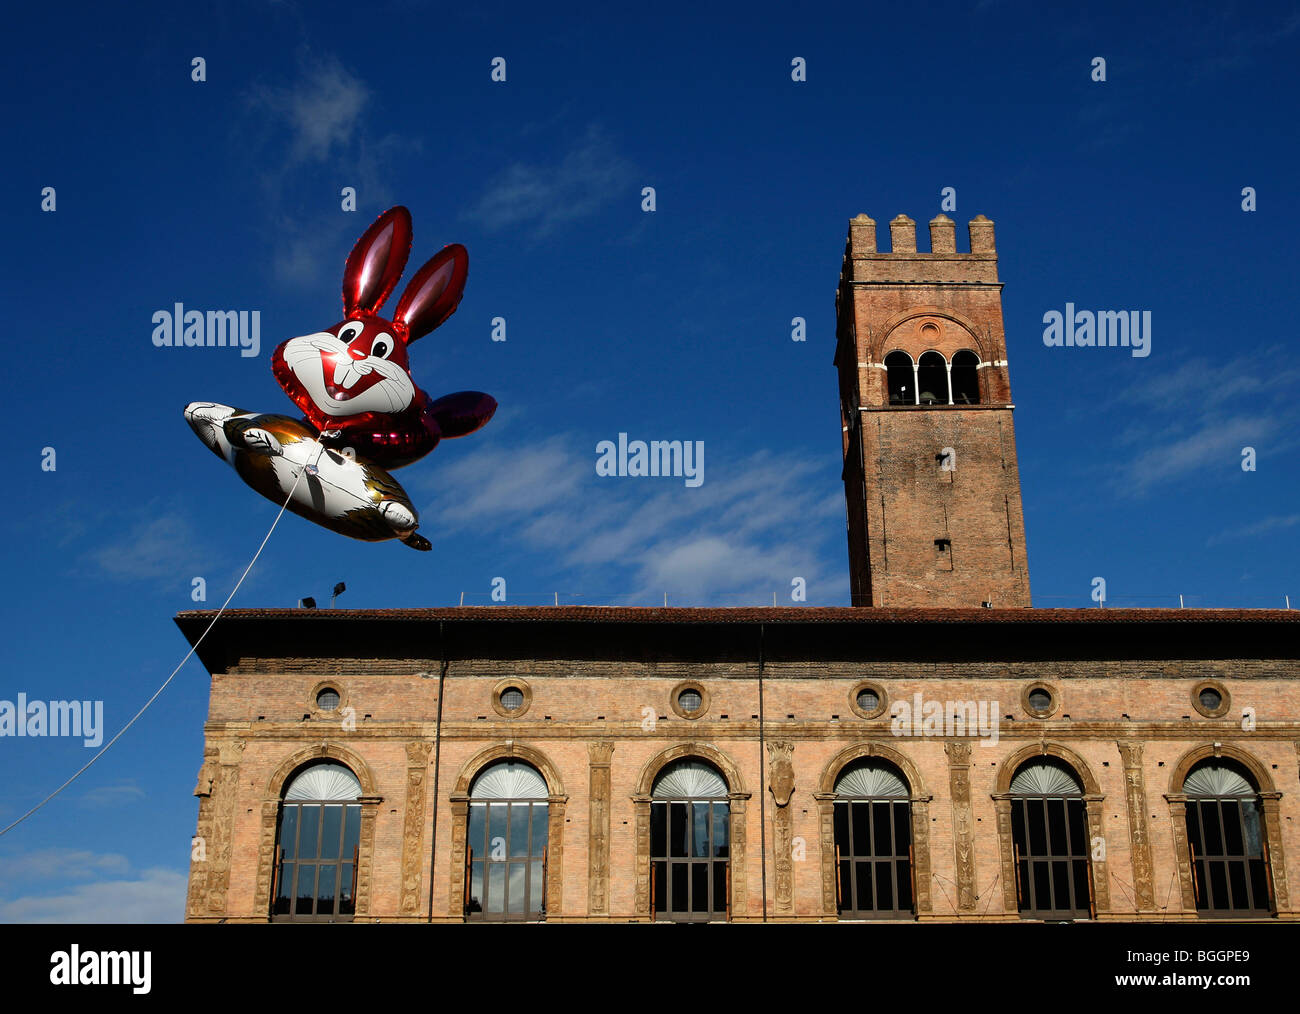 Balloons of cartoon rabbits fly in front of Palzzo re Enzo in the main square Piazza Maggiore in Bologna Emilia Stock Photo